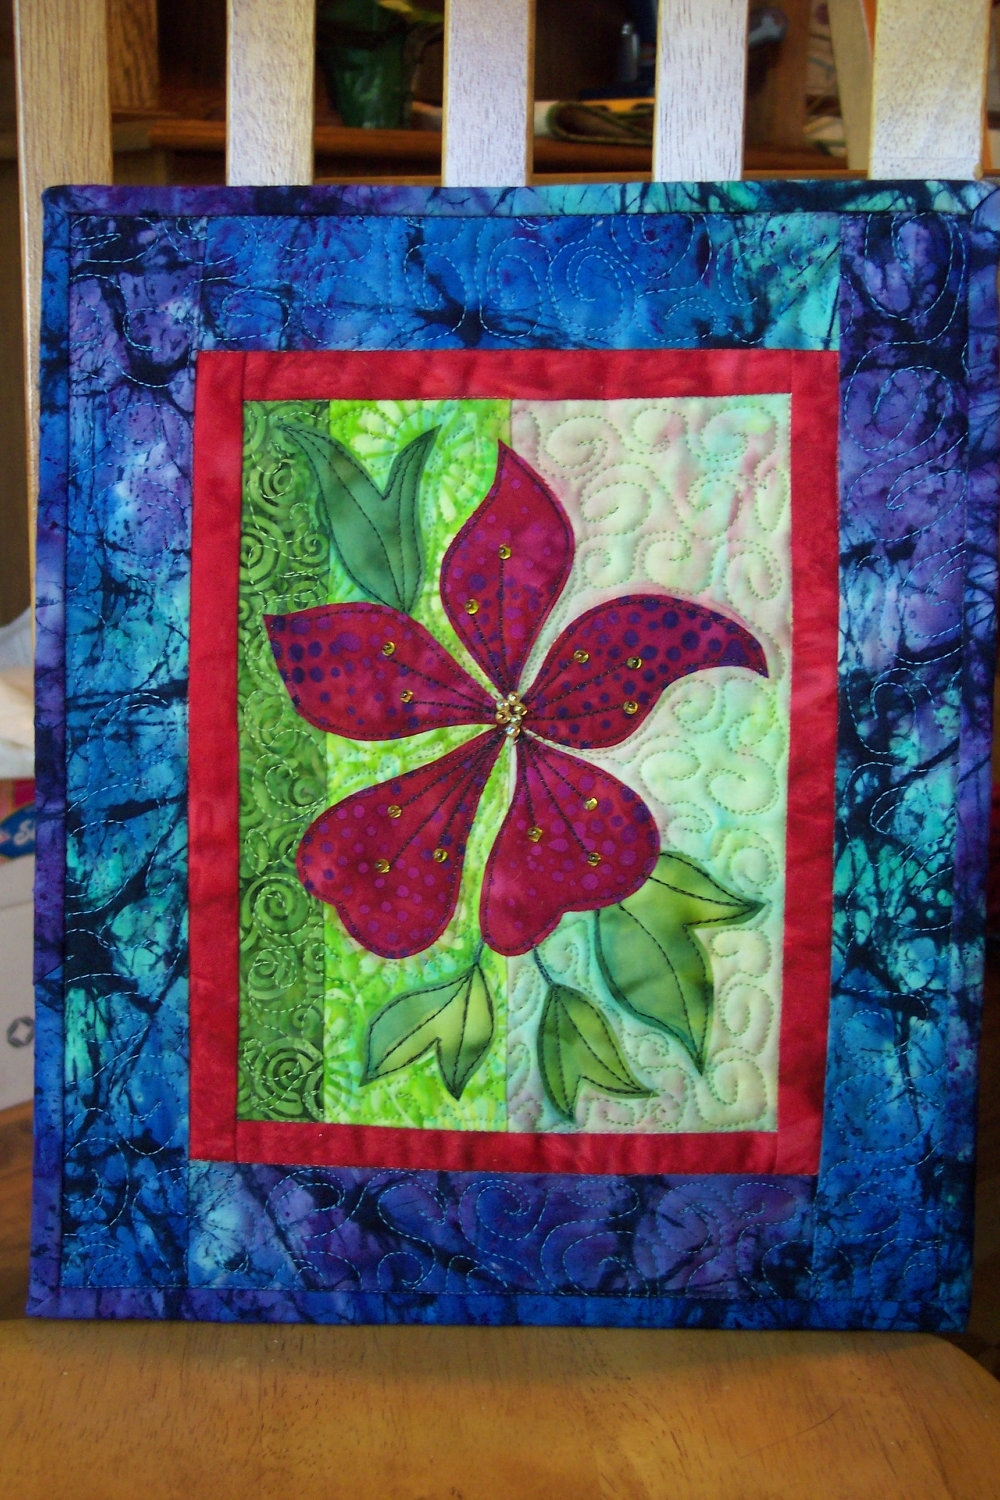 Landscape Quilt, Batik Fabric, Craft Pattern, Mixed Media, Wall Intended For Recent Quilt Fabric Wall Art (View 10 of 15)